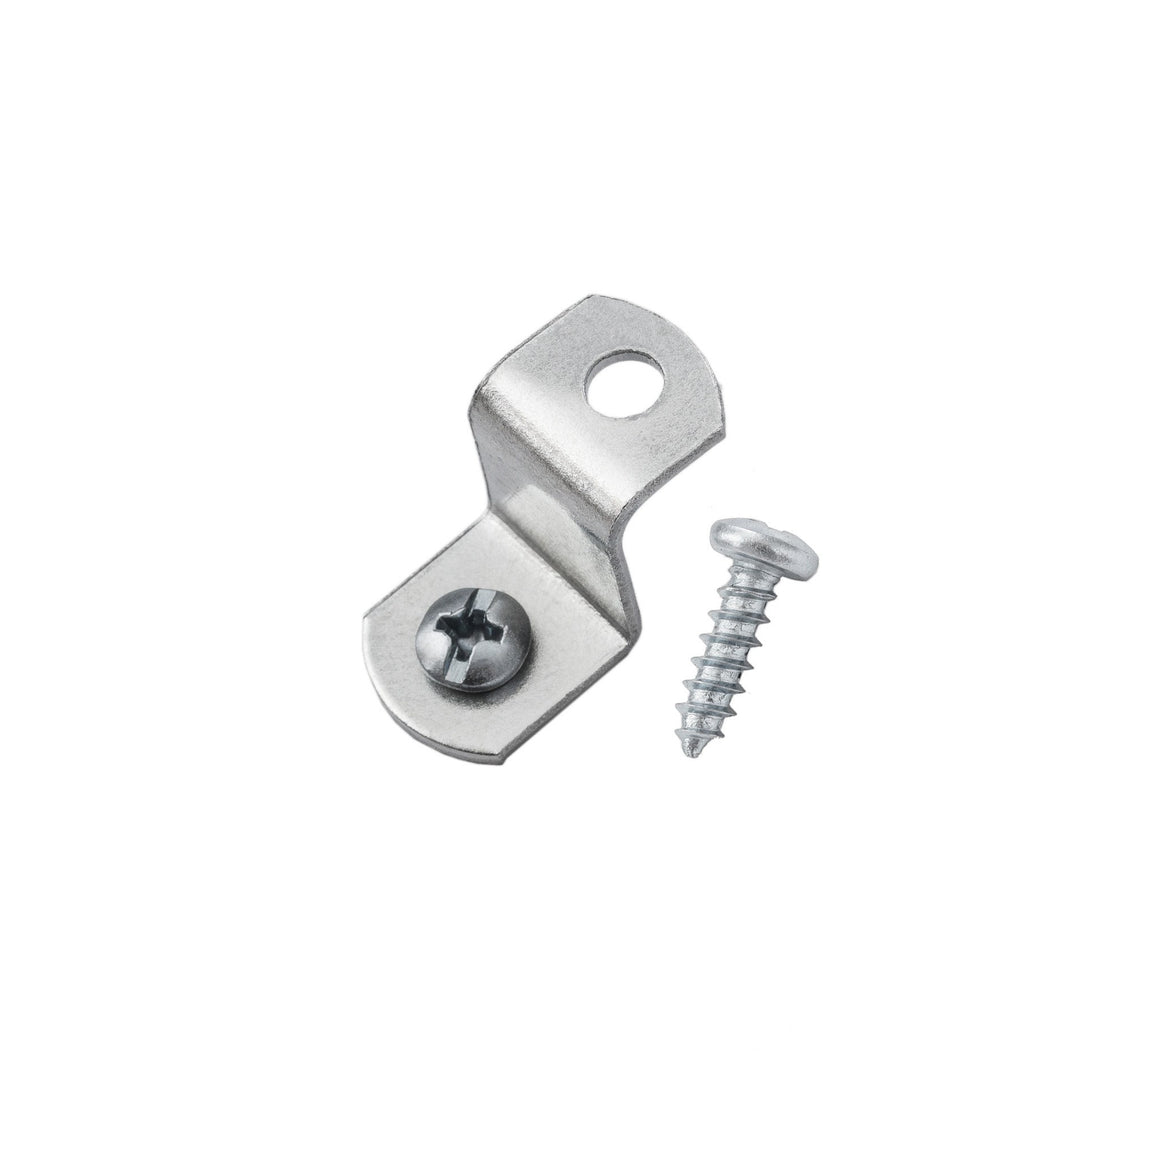 "1/2"" Offset Clips w/ Screws, Picture Frame Hardware"